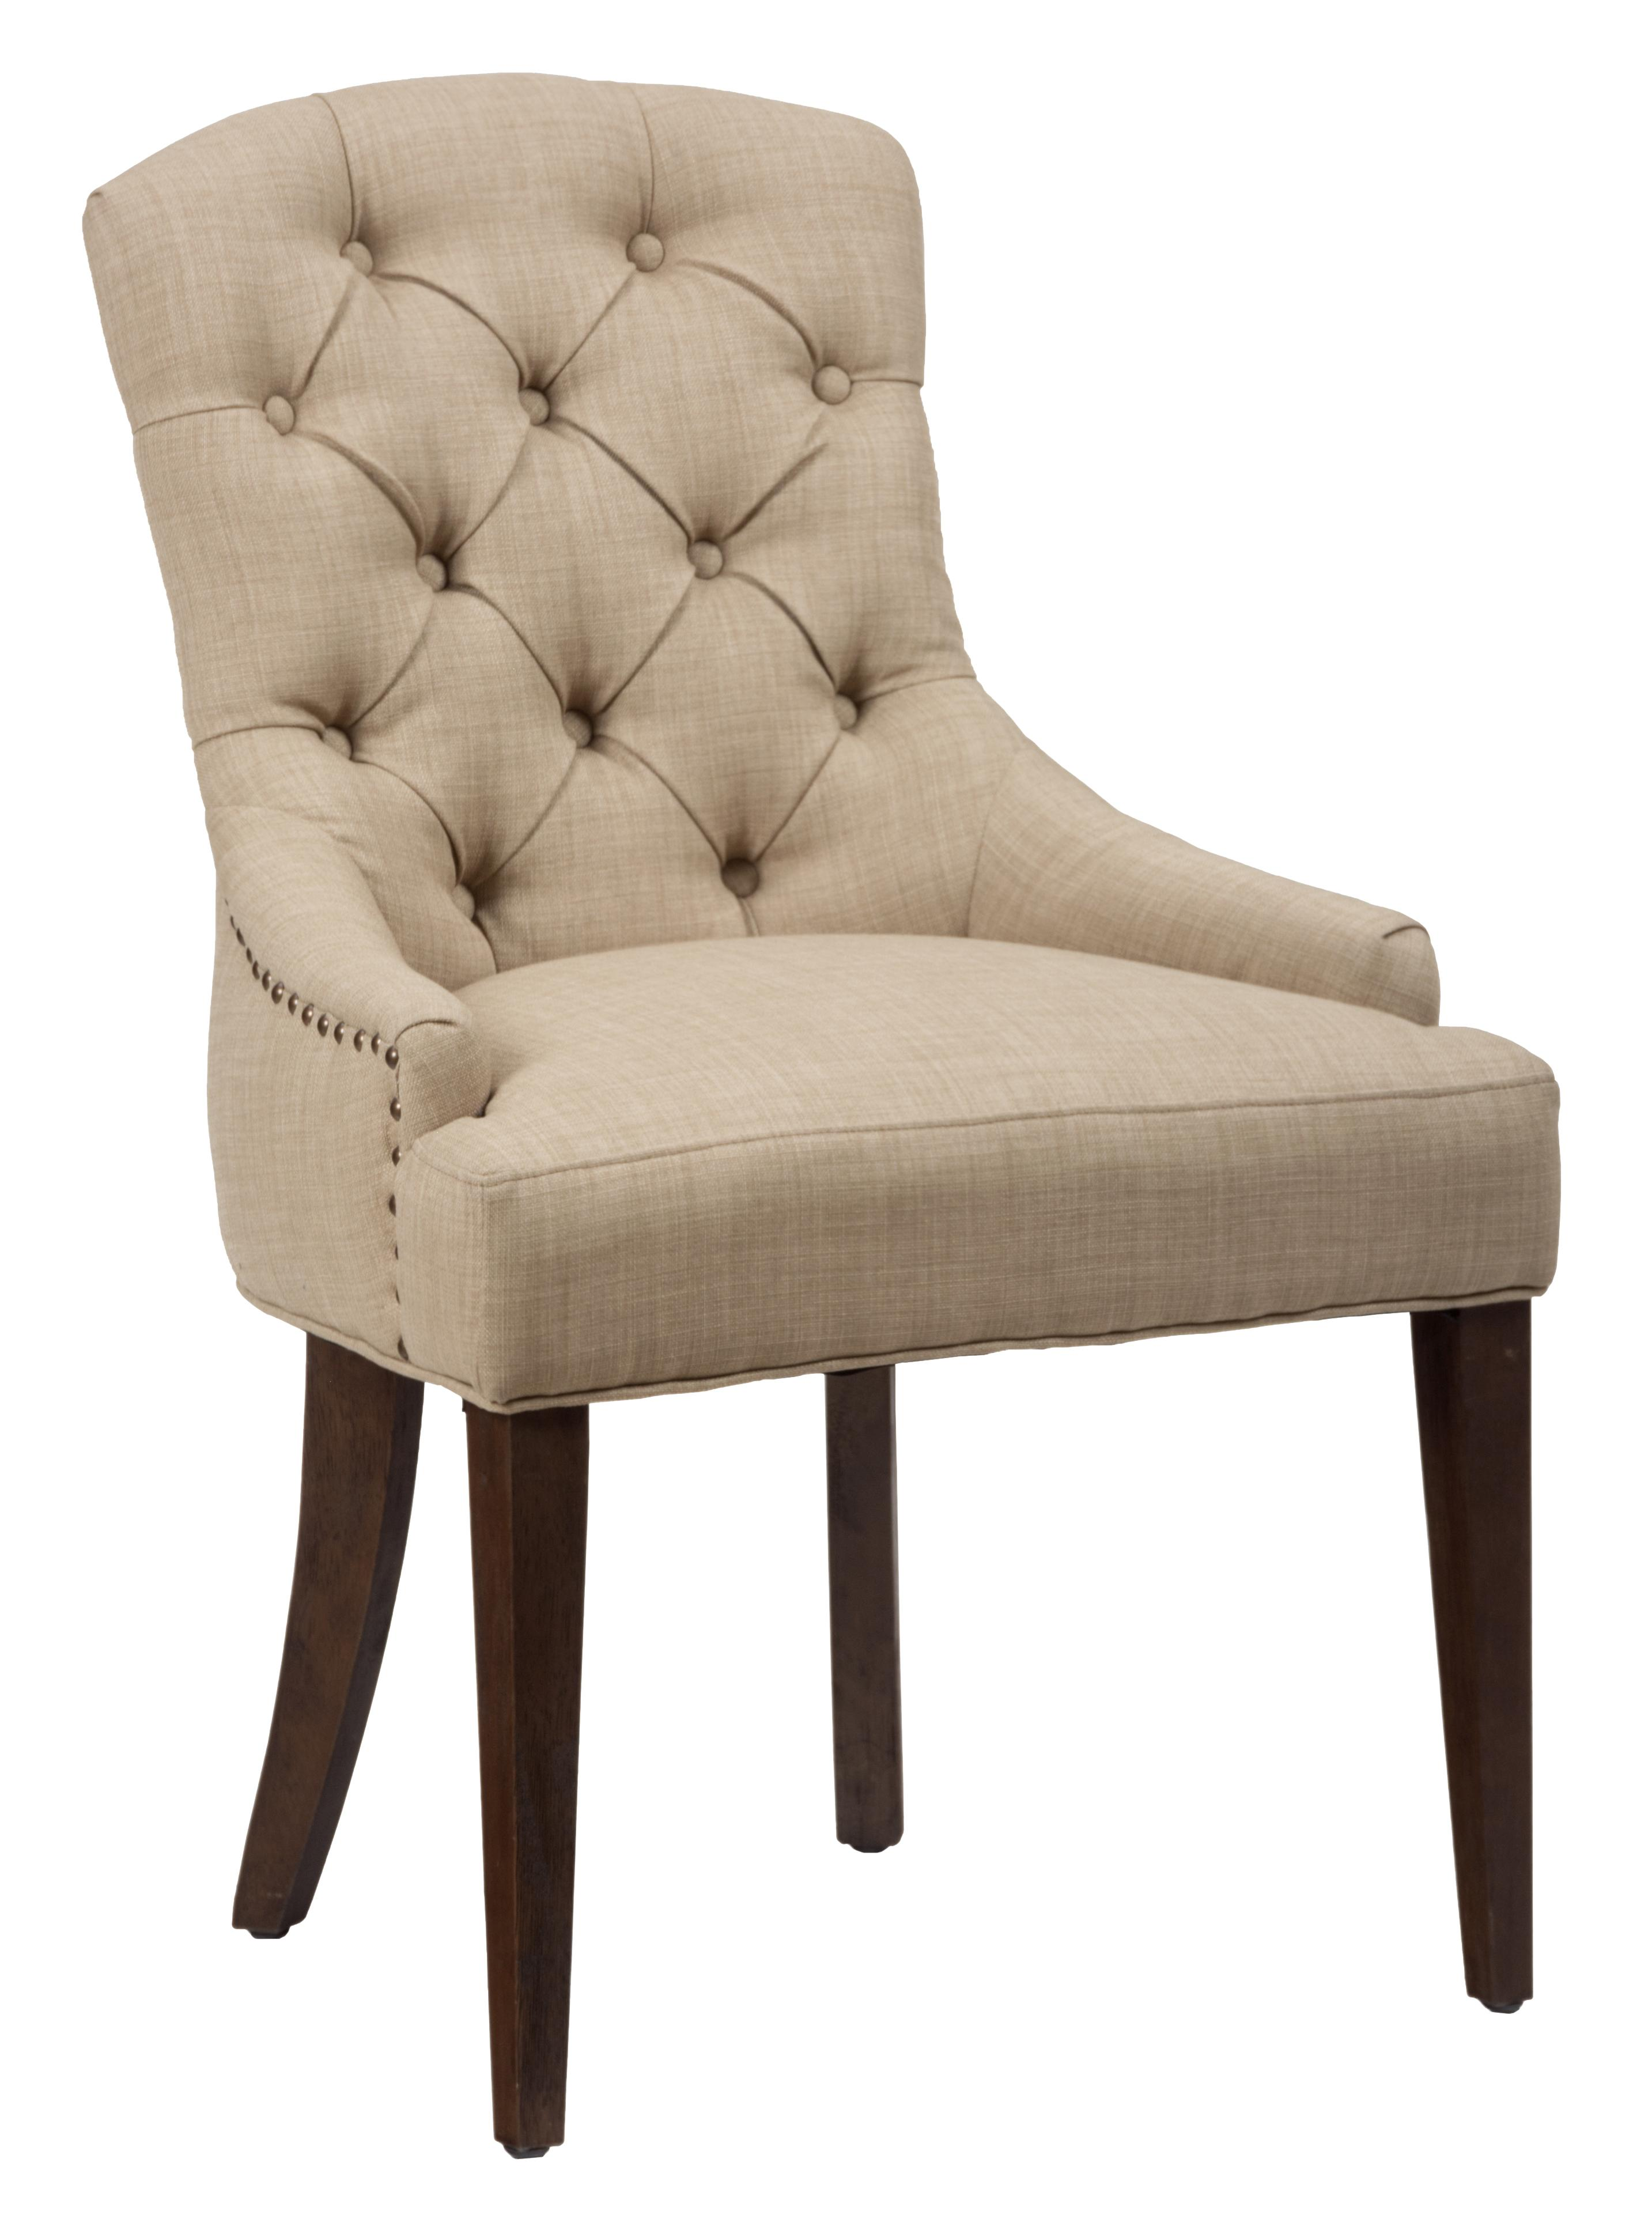 Morris Home Furnishings Long Beach Long Beach Upholstered Side Chair - Item Number: 679-212KD